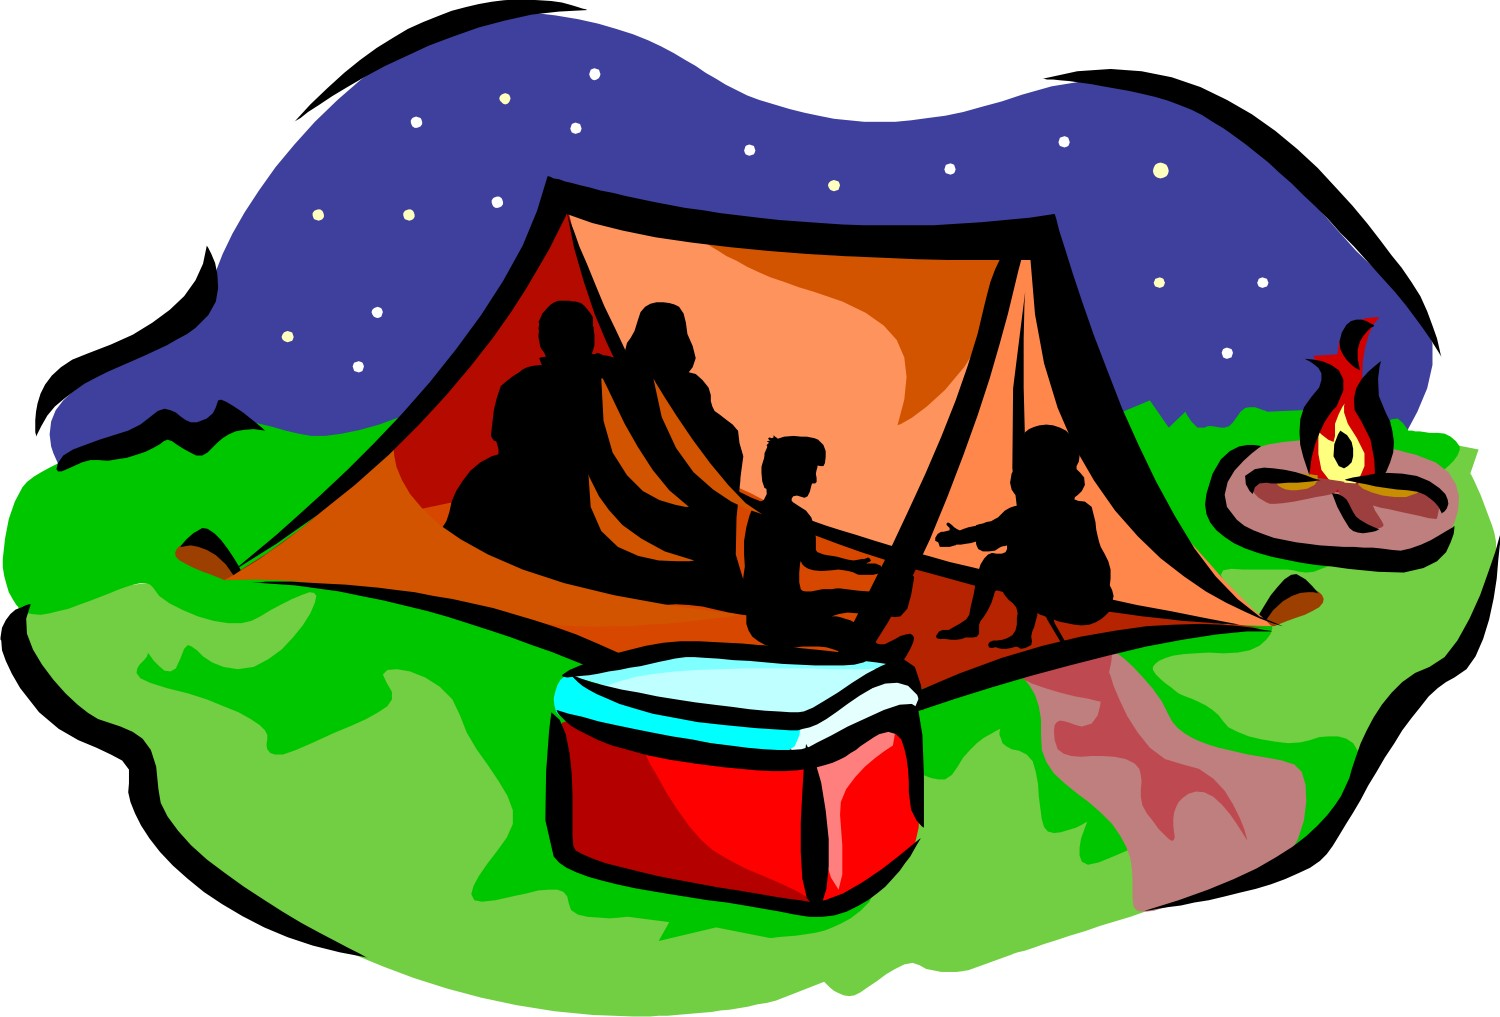 1500x1017 Night Clipart Camp Tent